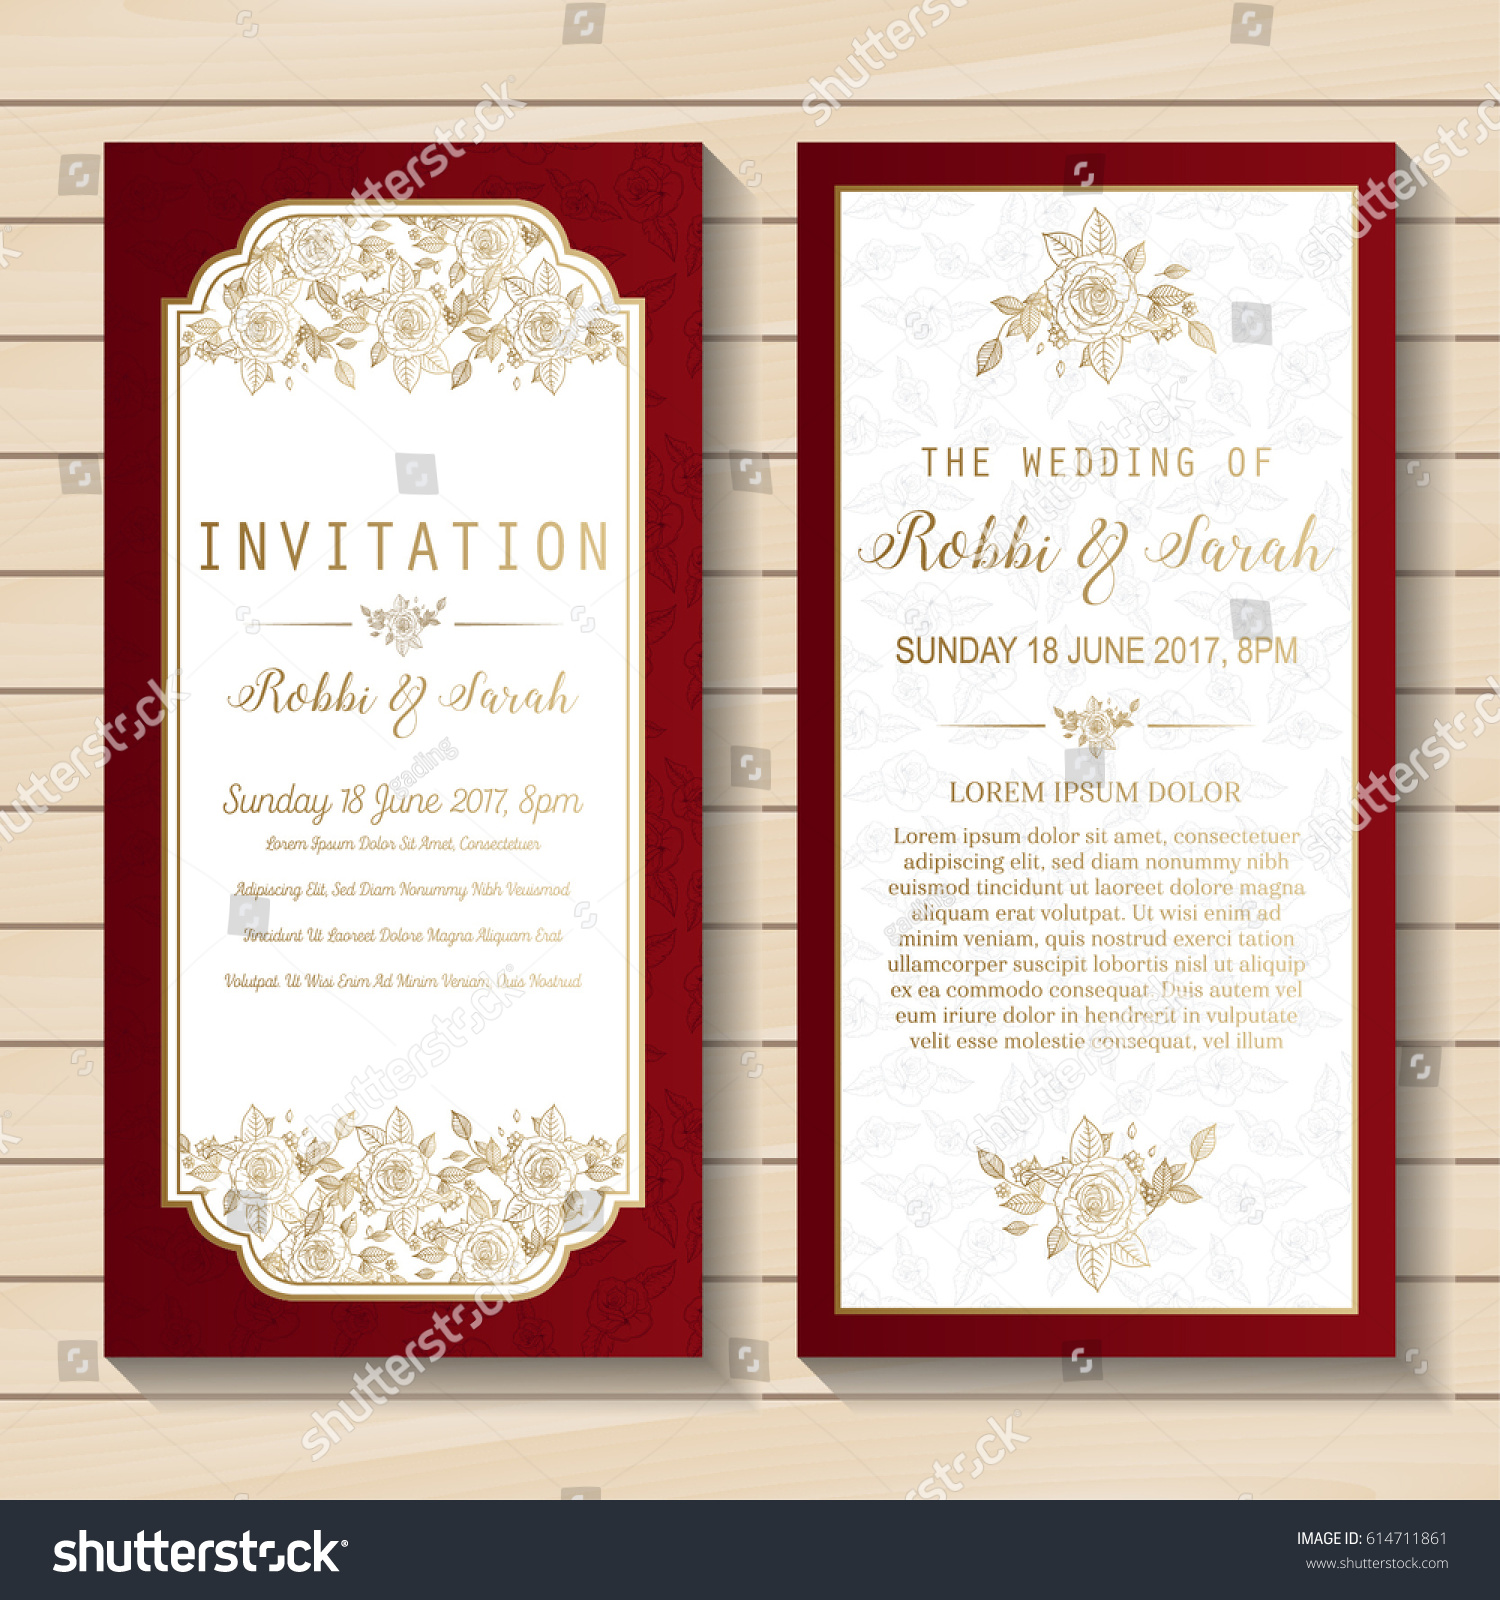 Luxury Wedding Invitation Card Sweet Floral Stock Vector (2018 ...